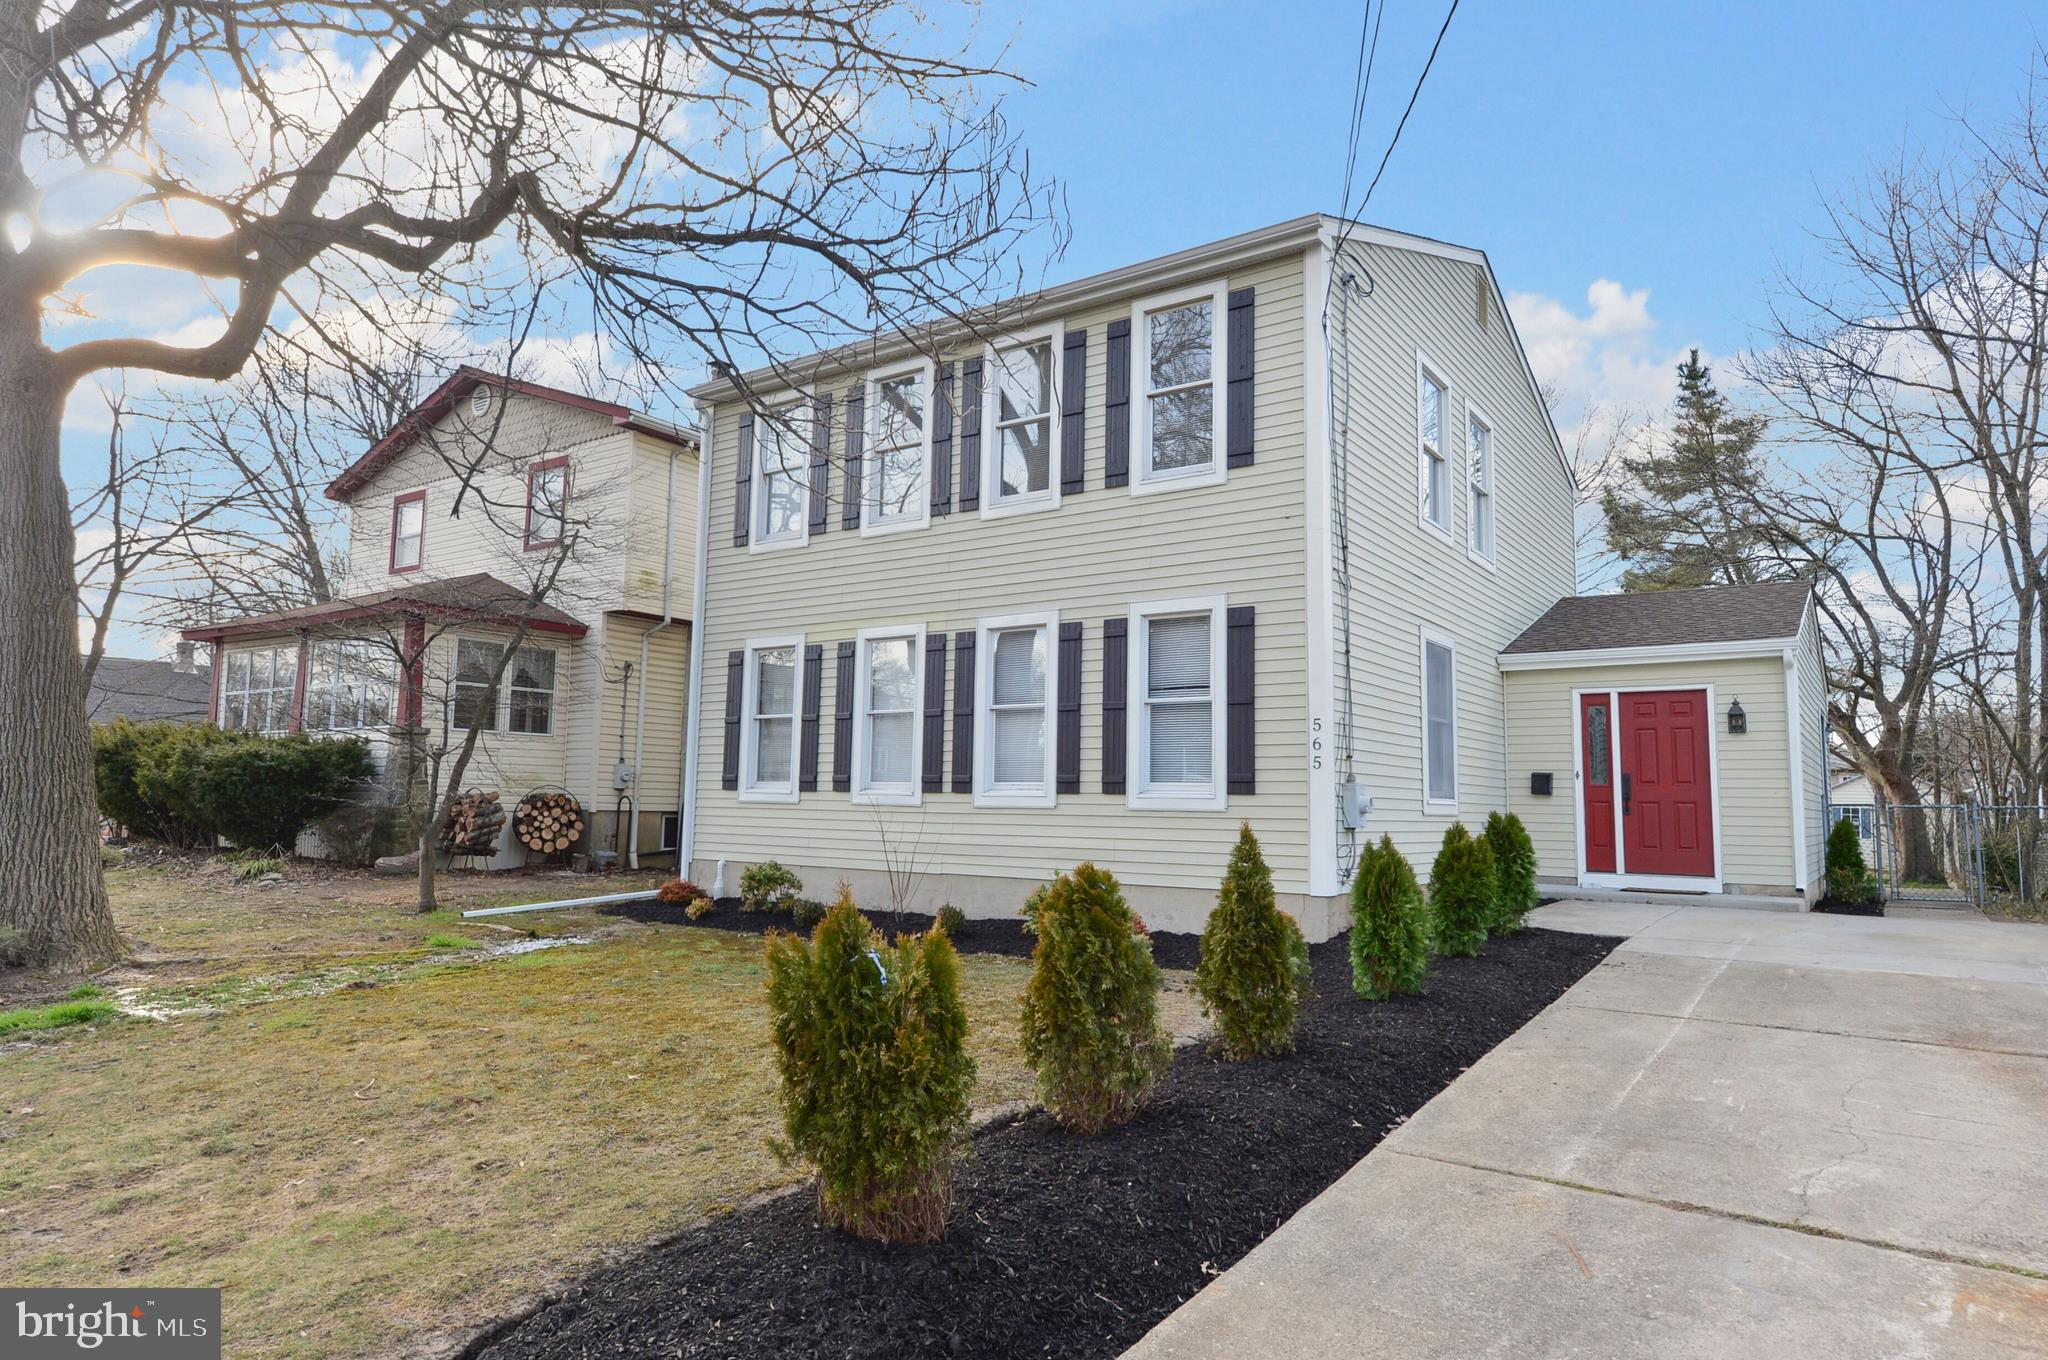 565 W GRAISBURY AVENUE, AUDUBON, NJ 08106